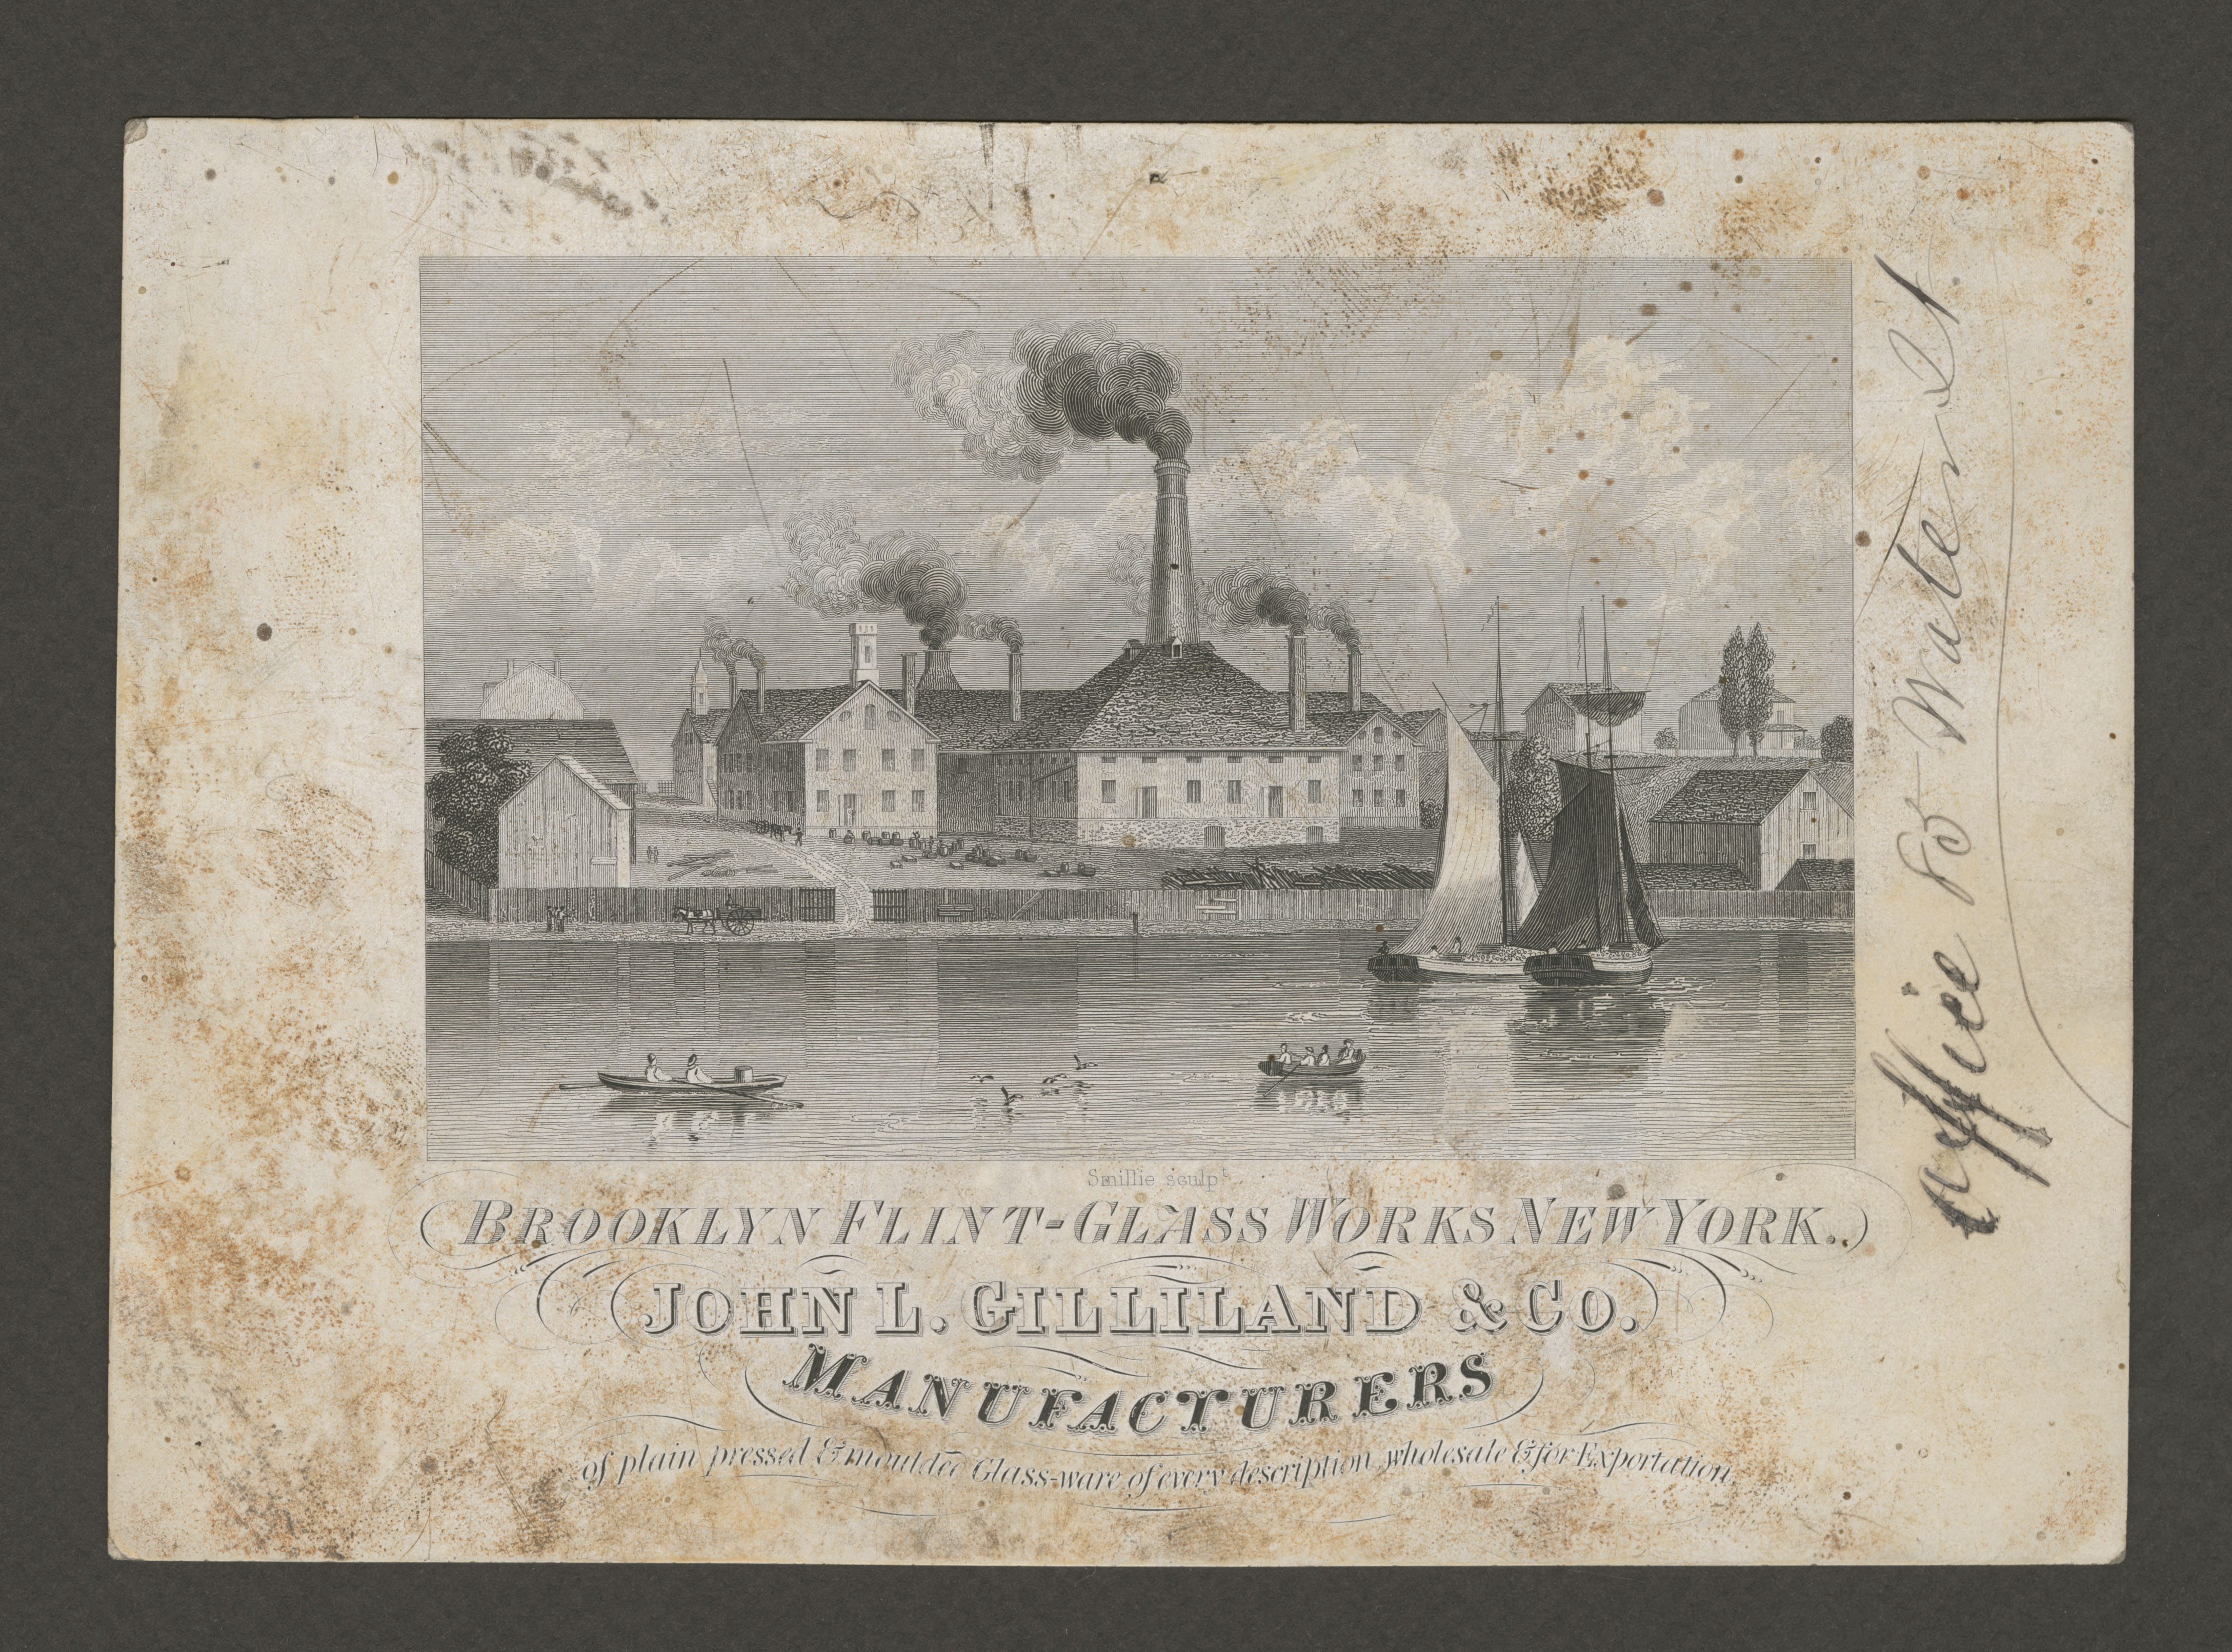 Engraving features Brooklyn Flint Glass Works factory buildings along river, 1852